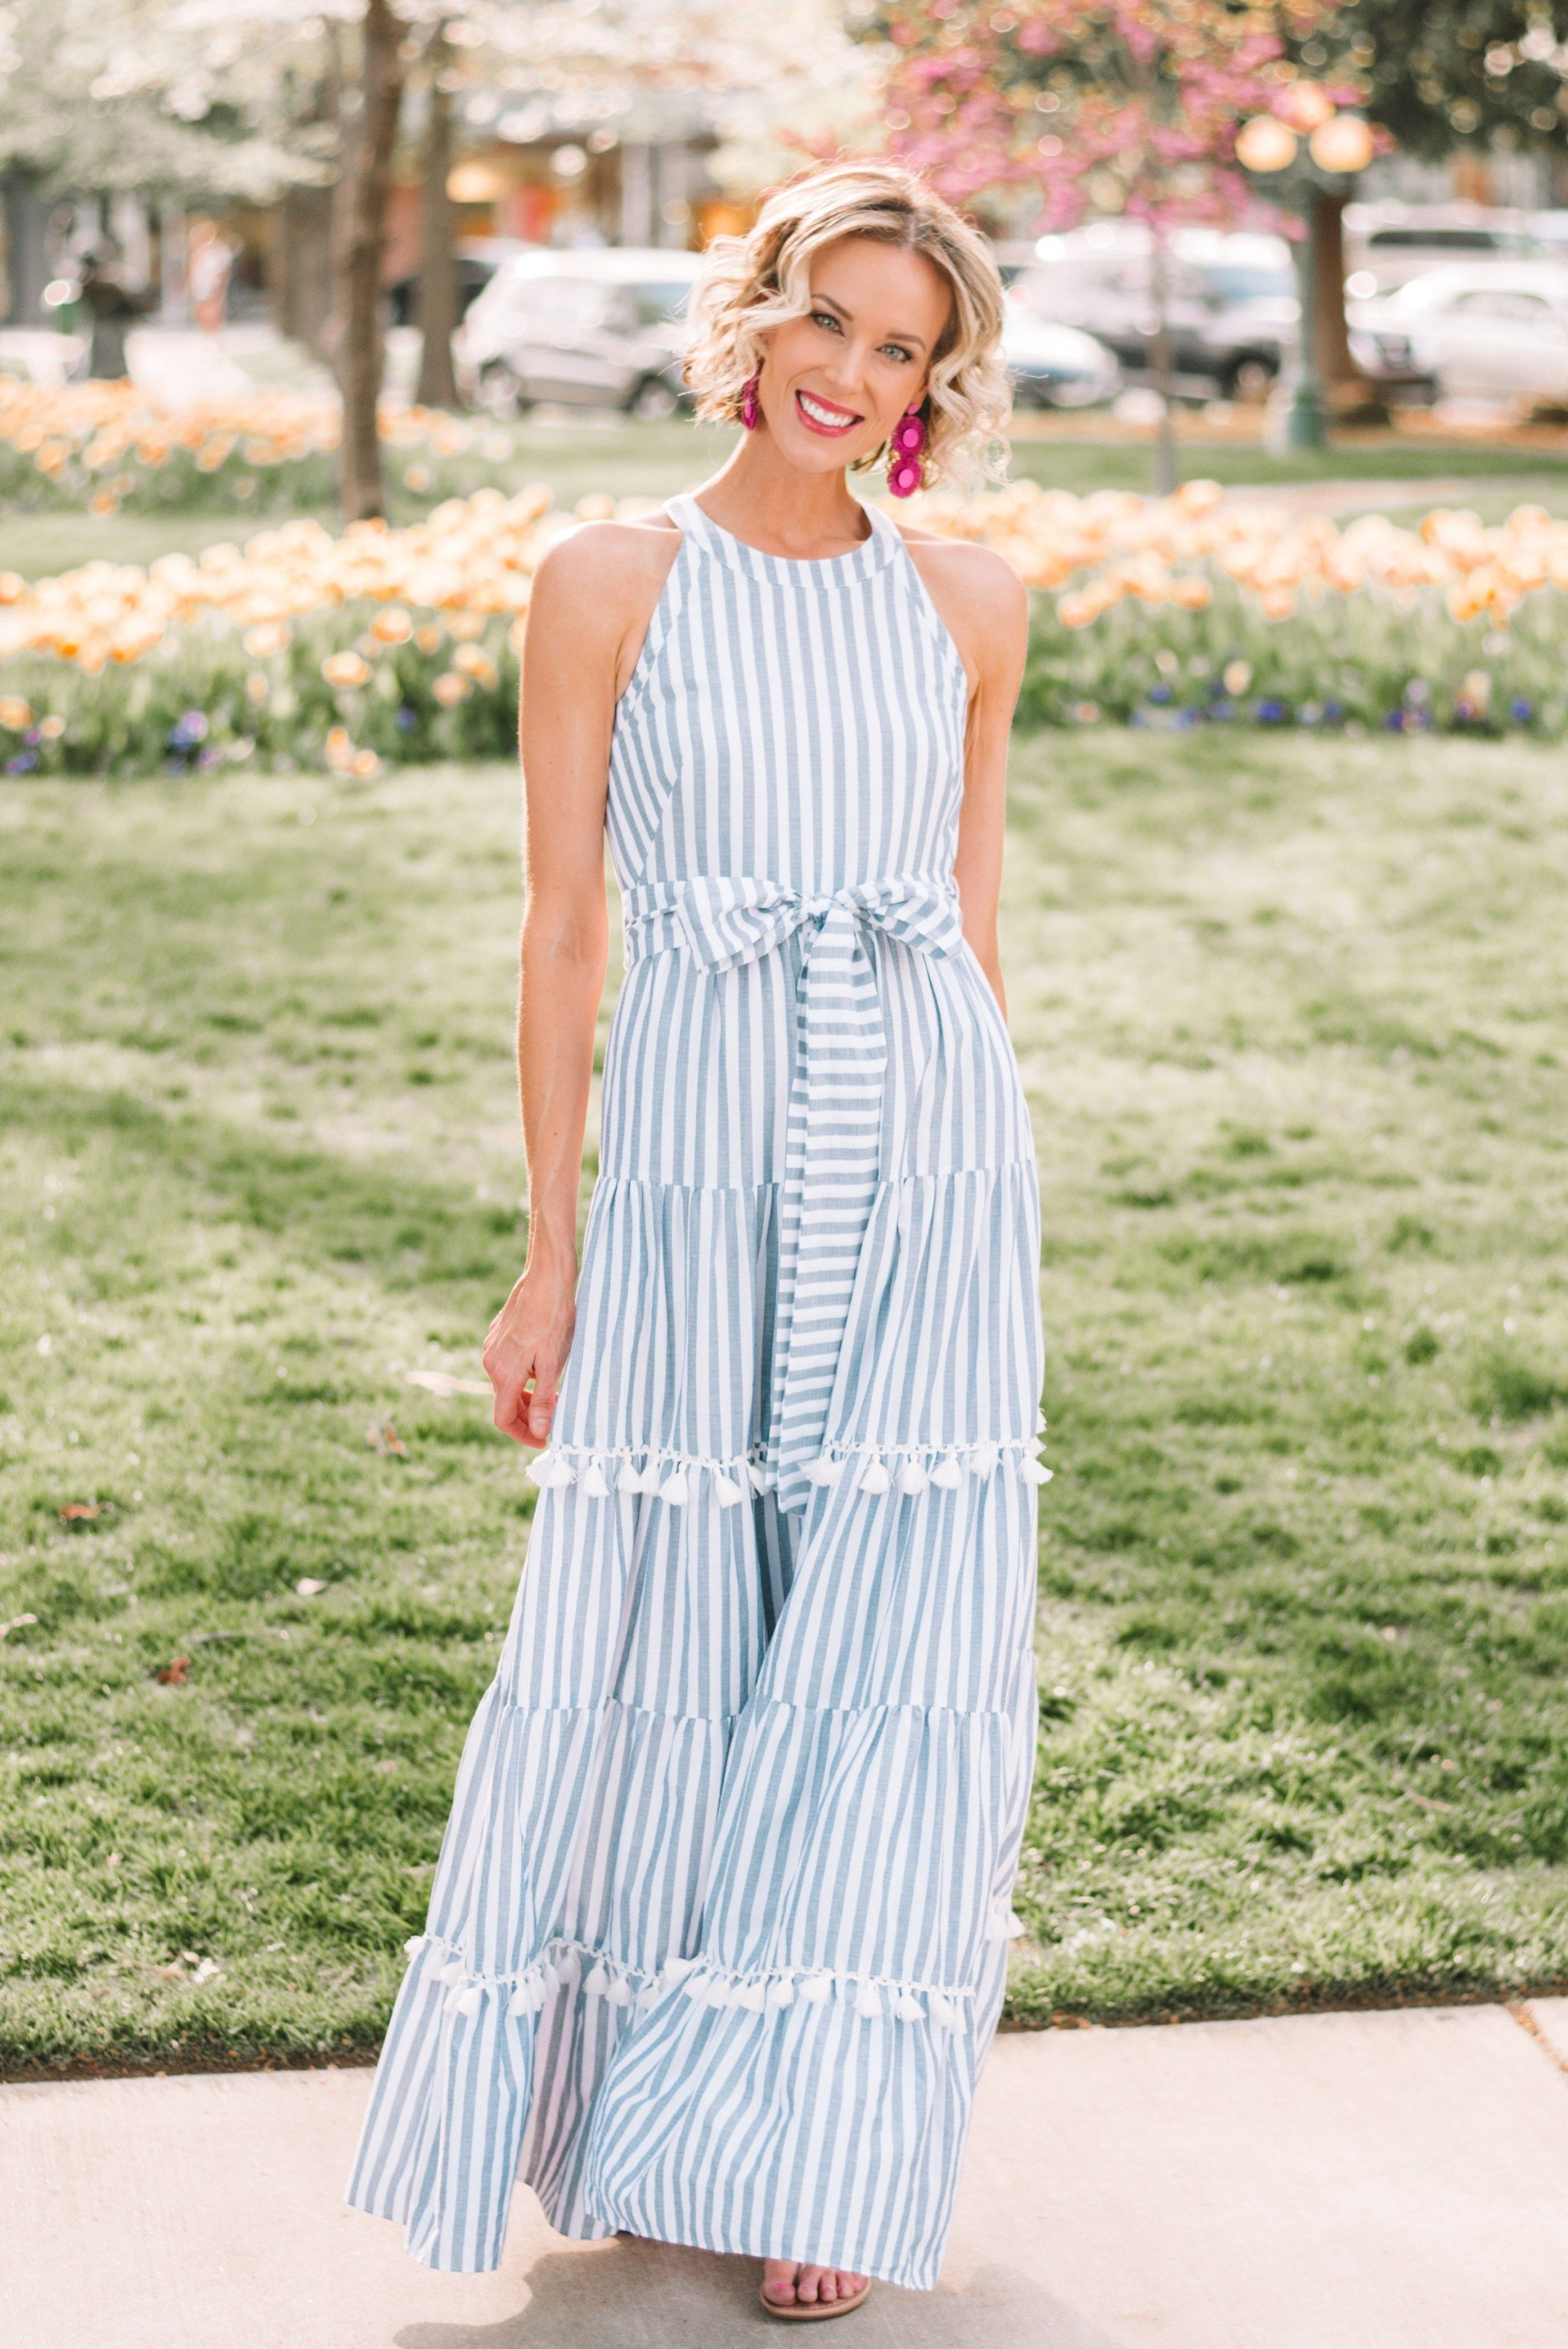 The Maxi Dress Of My Dreams Straight A Style Maxi Dress Striped Dress Summer Long Flowy Maxi Dresses [ 3235 x 2160 Pixel ]